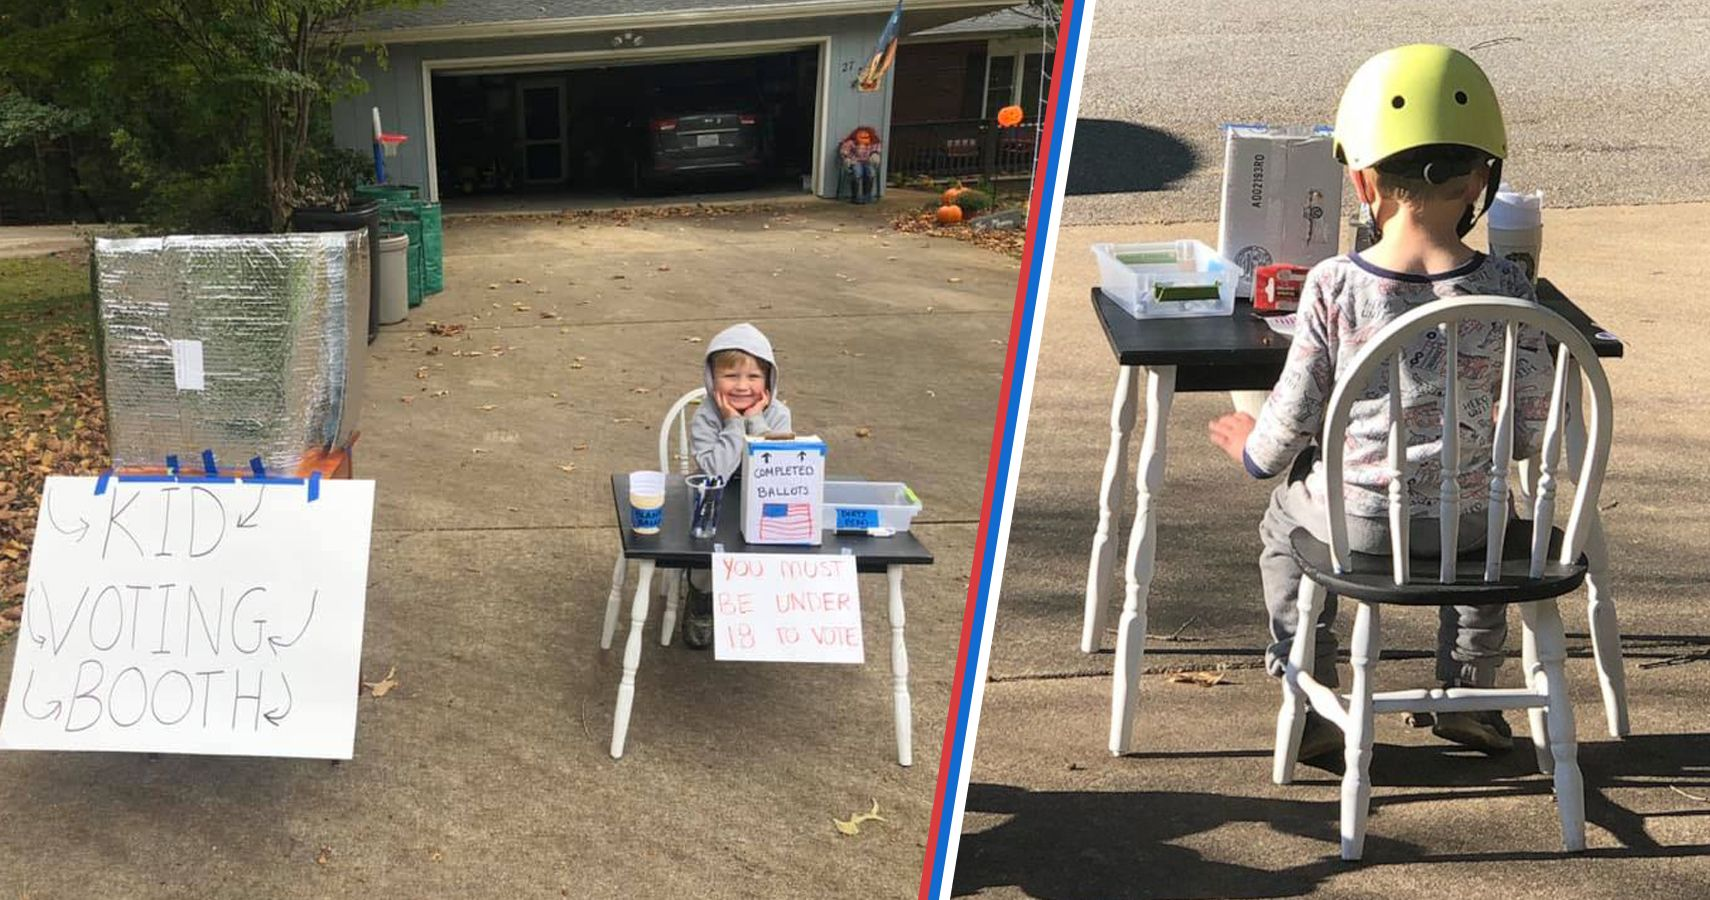 6-Year-Old's Homemade Election Booth | Moms.com